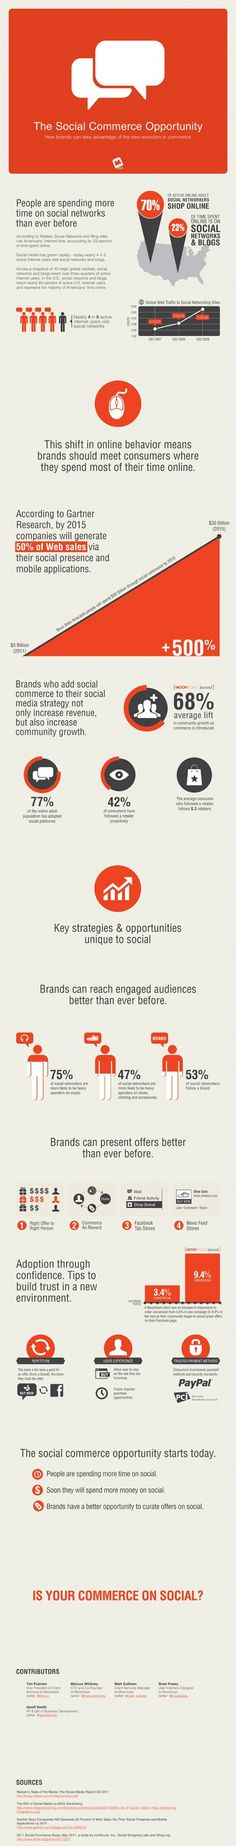 The Social Commerce opportunity #infographic